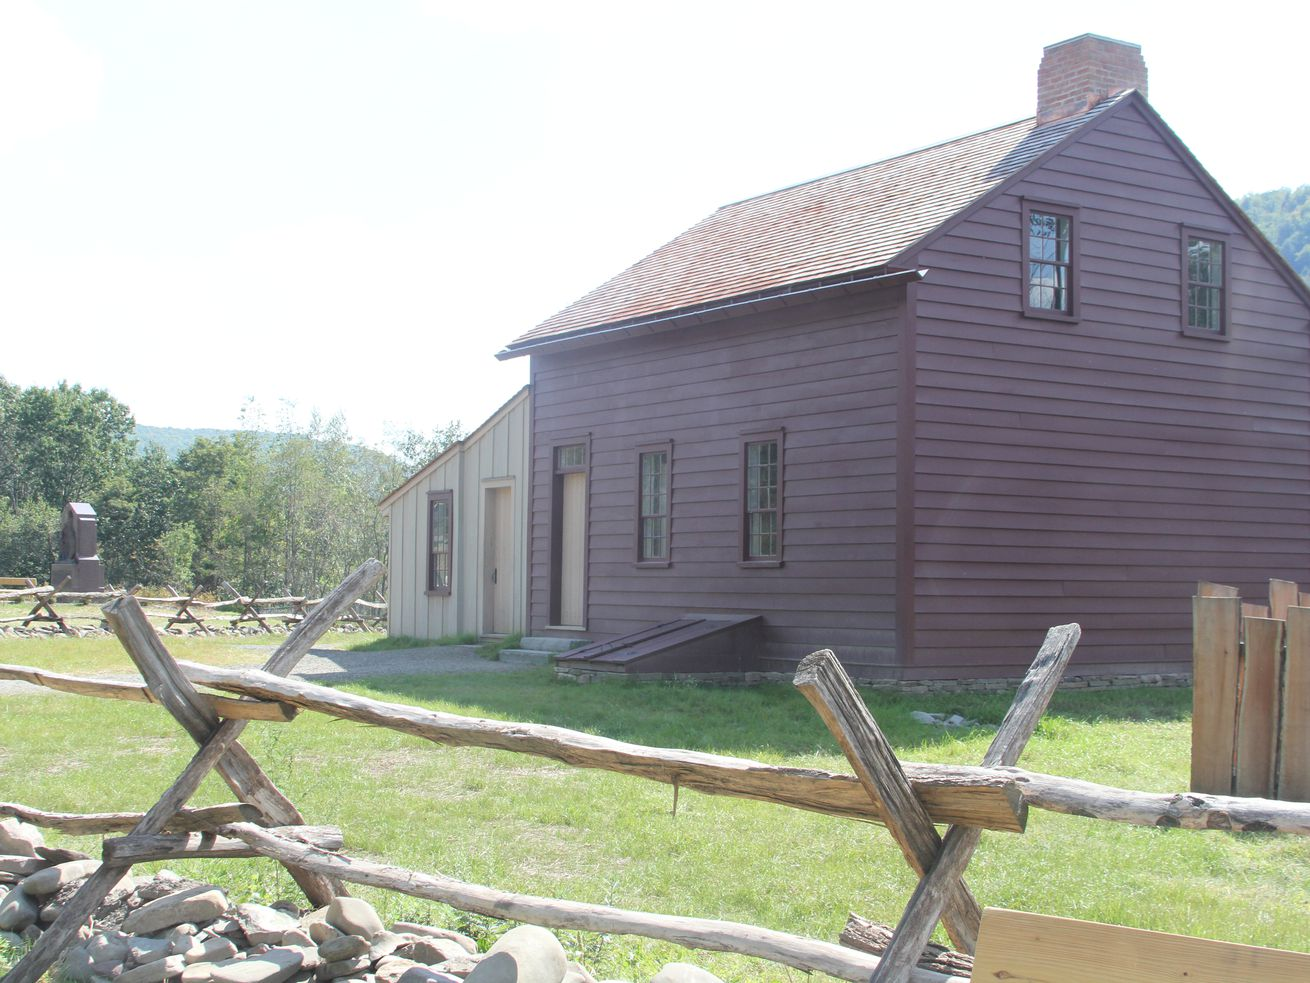 The replicated home of Joseph and Emma Smith is among the features at the Priesthood Restoration Site in Susquehanna County, Pennsylvania.